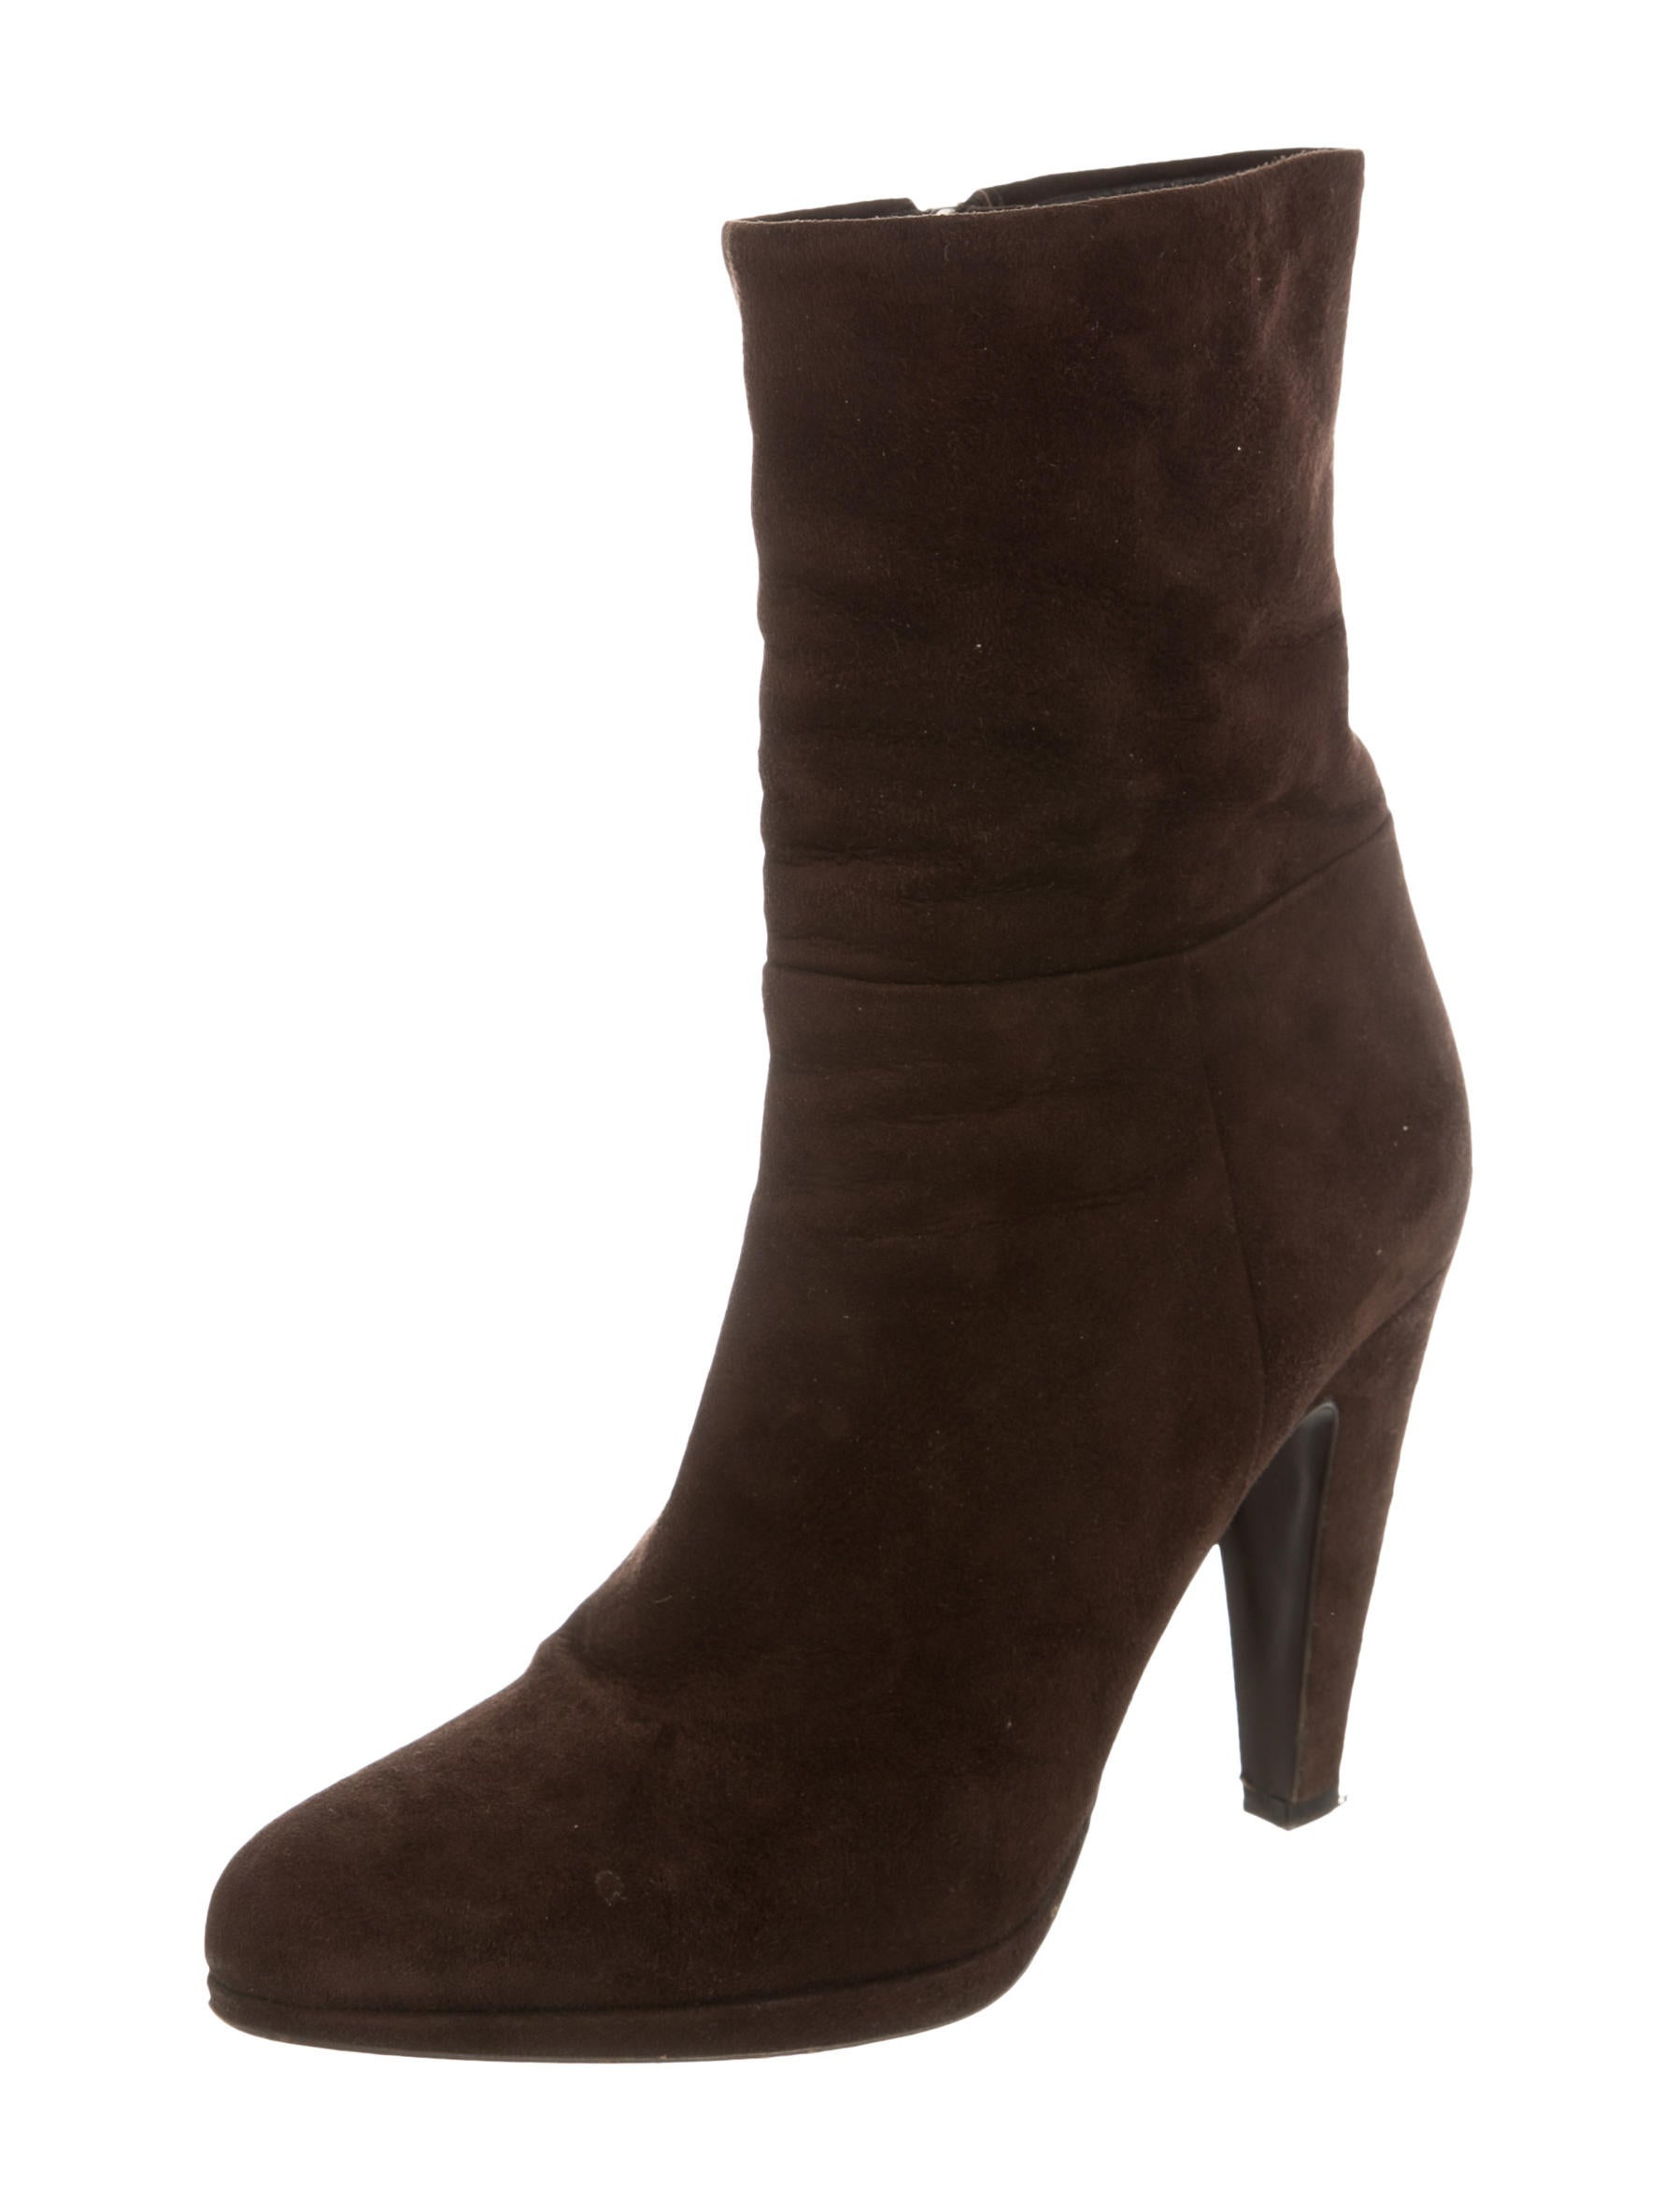 prada suede pointed toe boots shoes pra106519 the